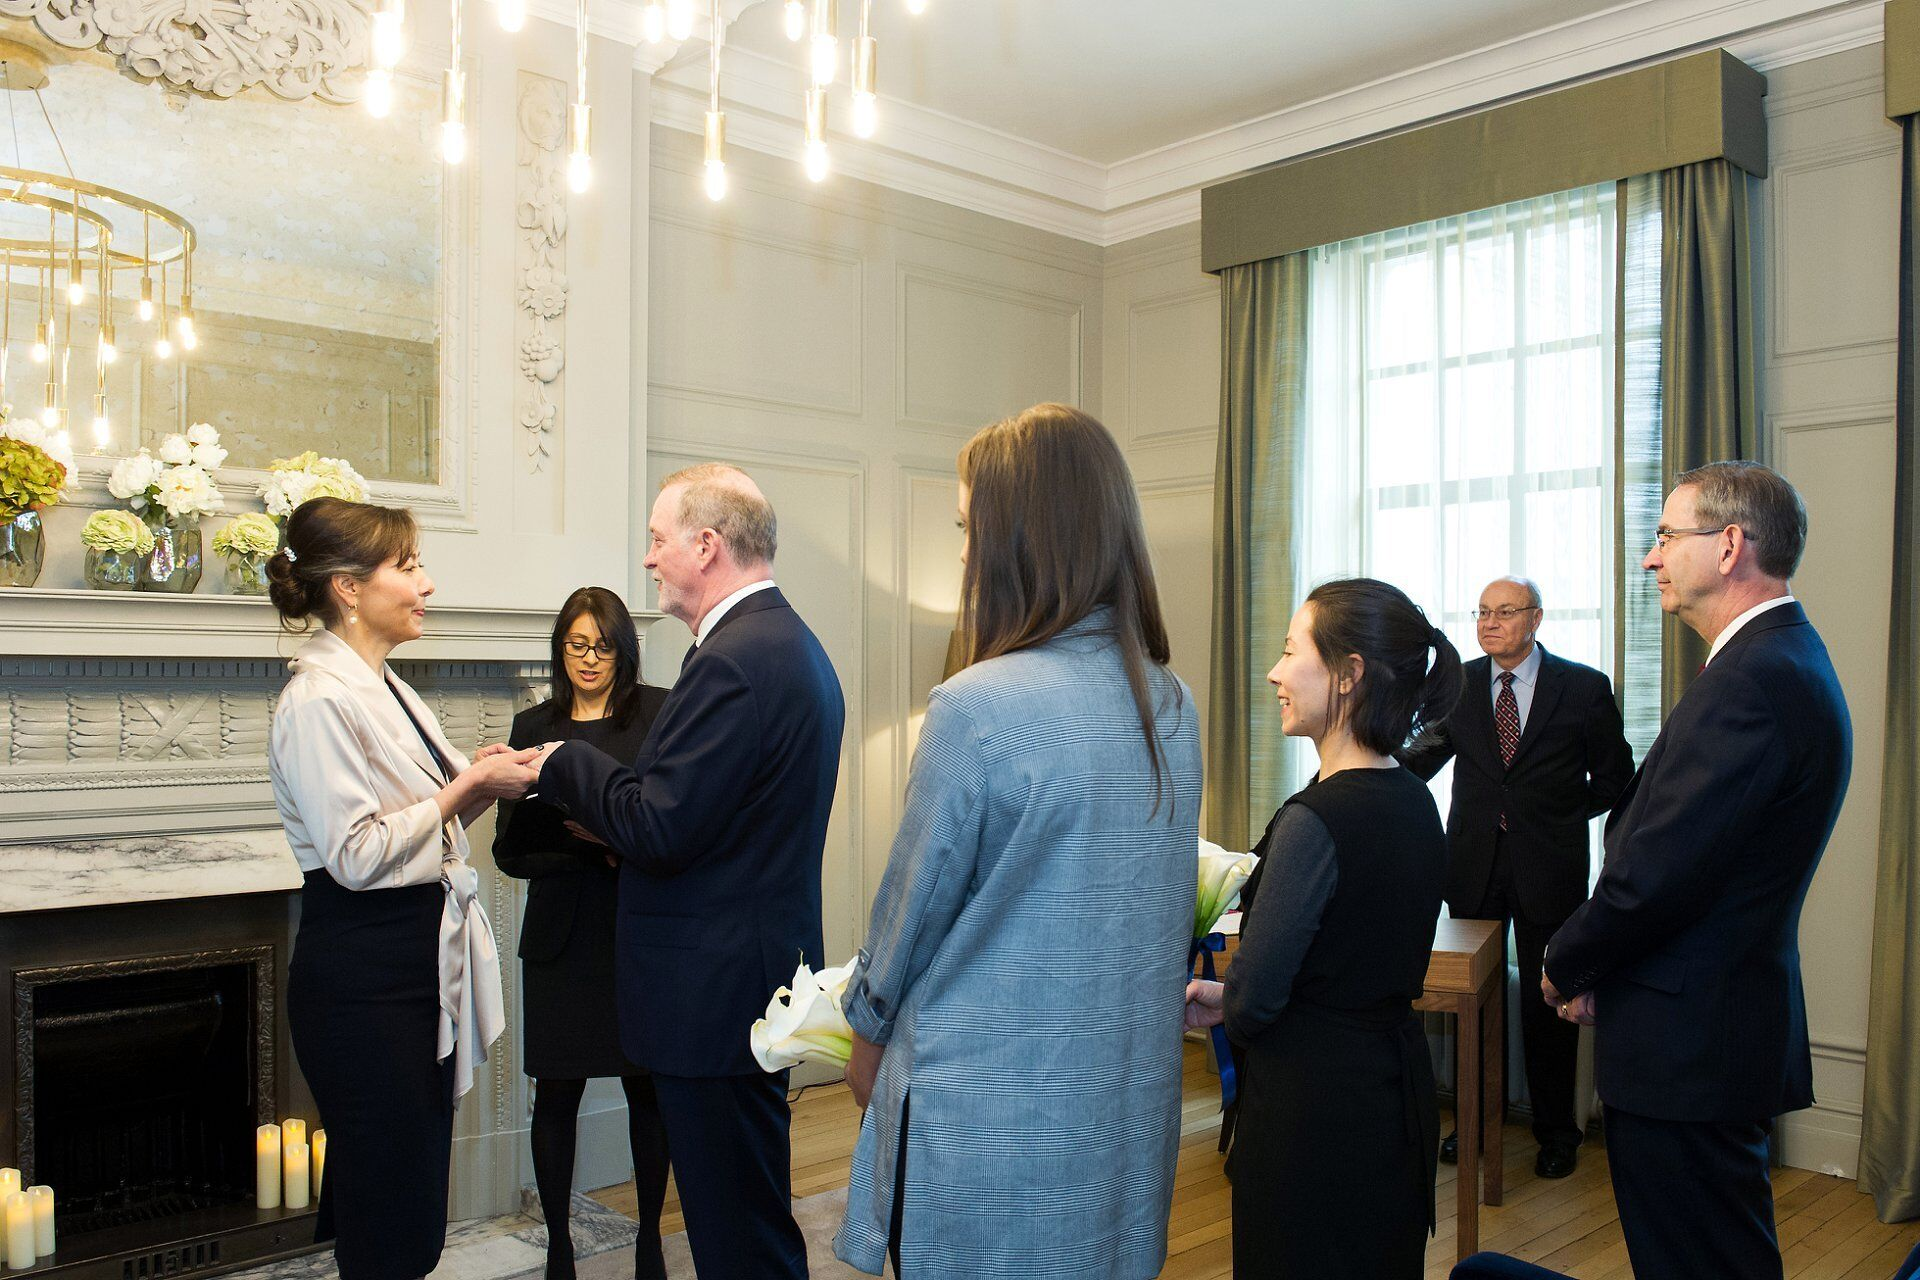 civil ceremony in the soho room wedding photographer old marylebone town hall (emma duggan)